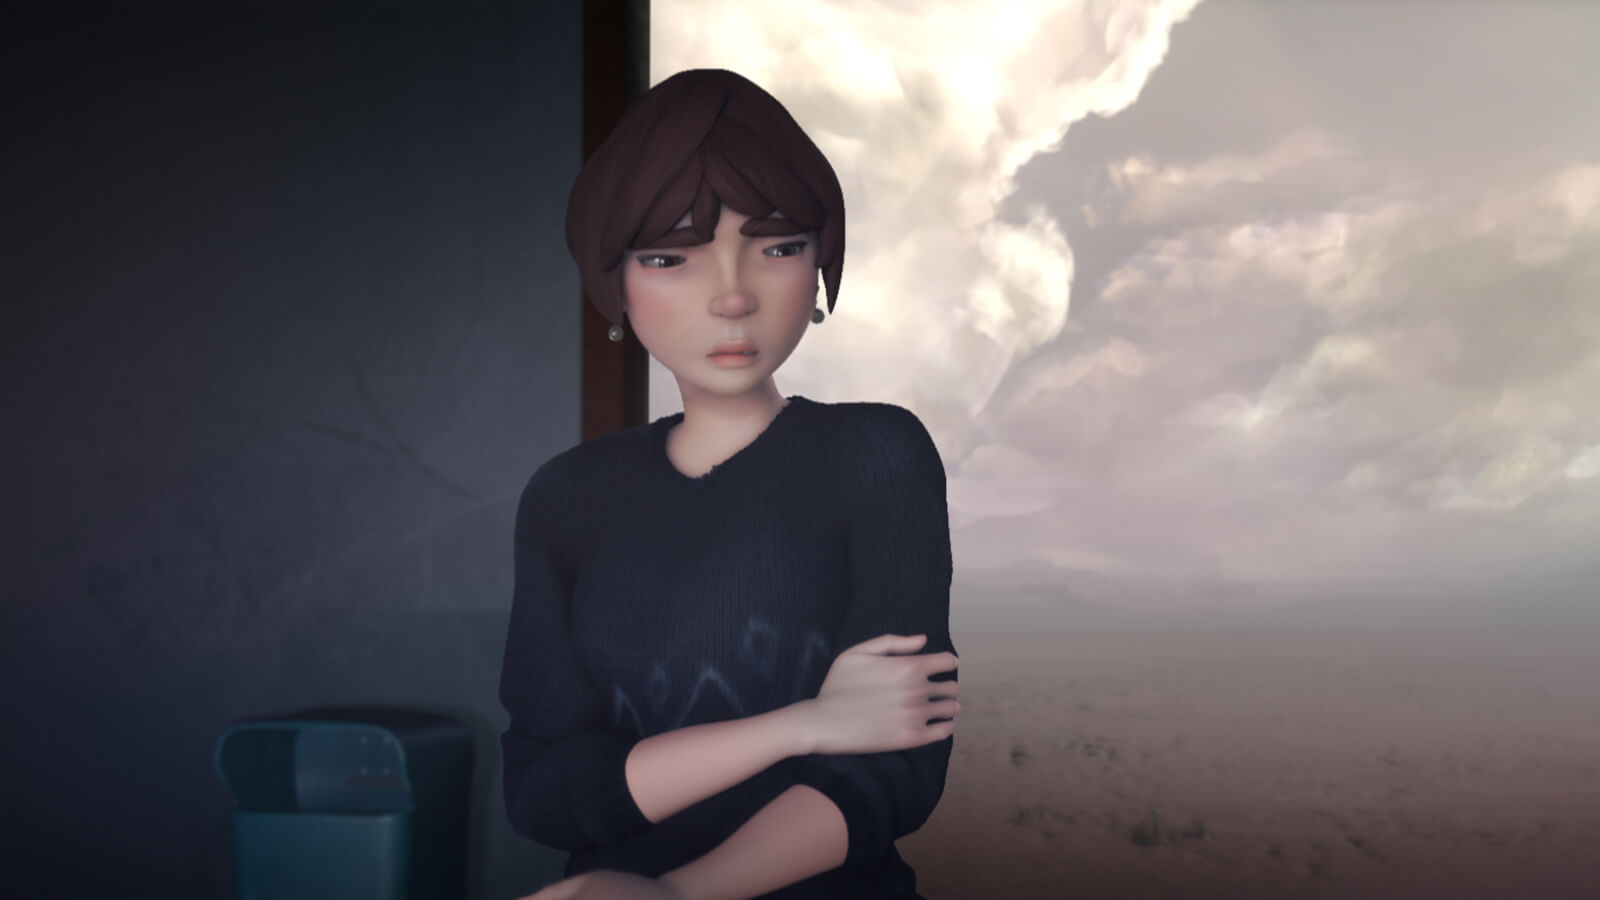 A CG image of a dispirited woman in a black sweater at an open-air train station. The landscape behind her is a barren desert